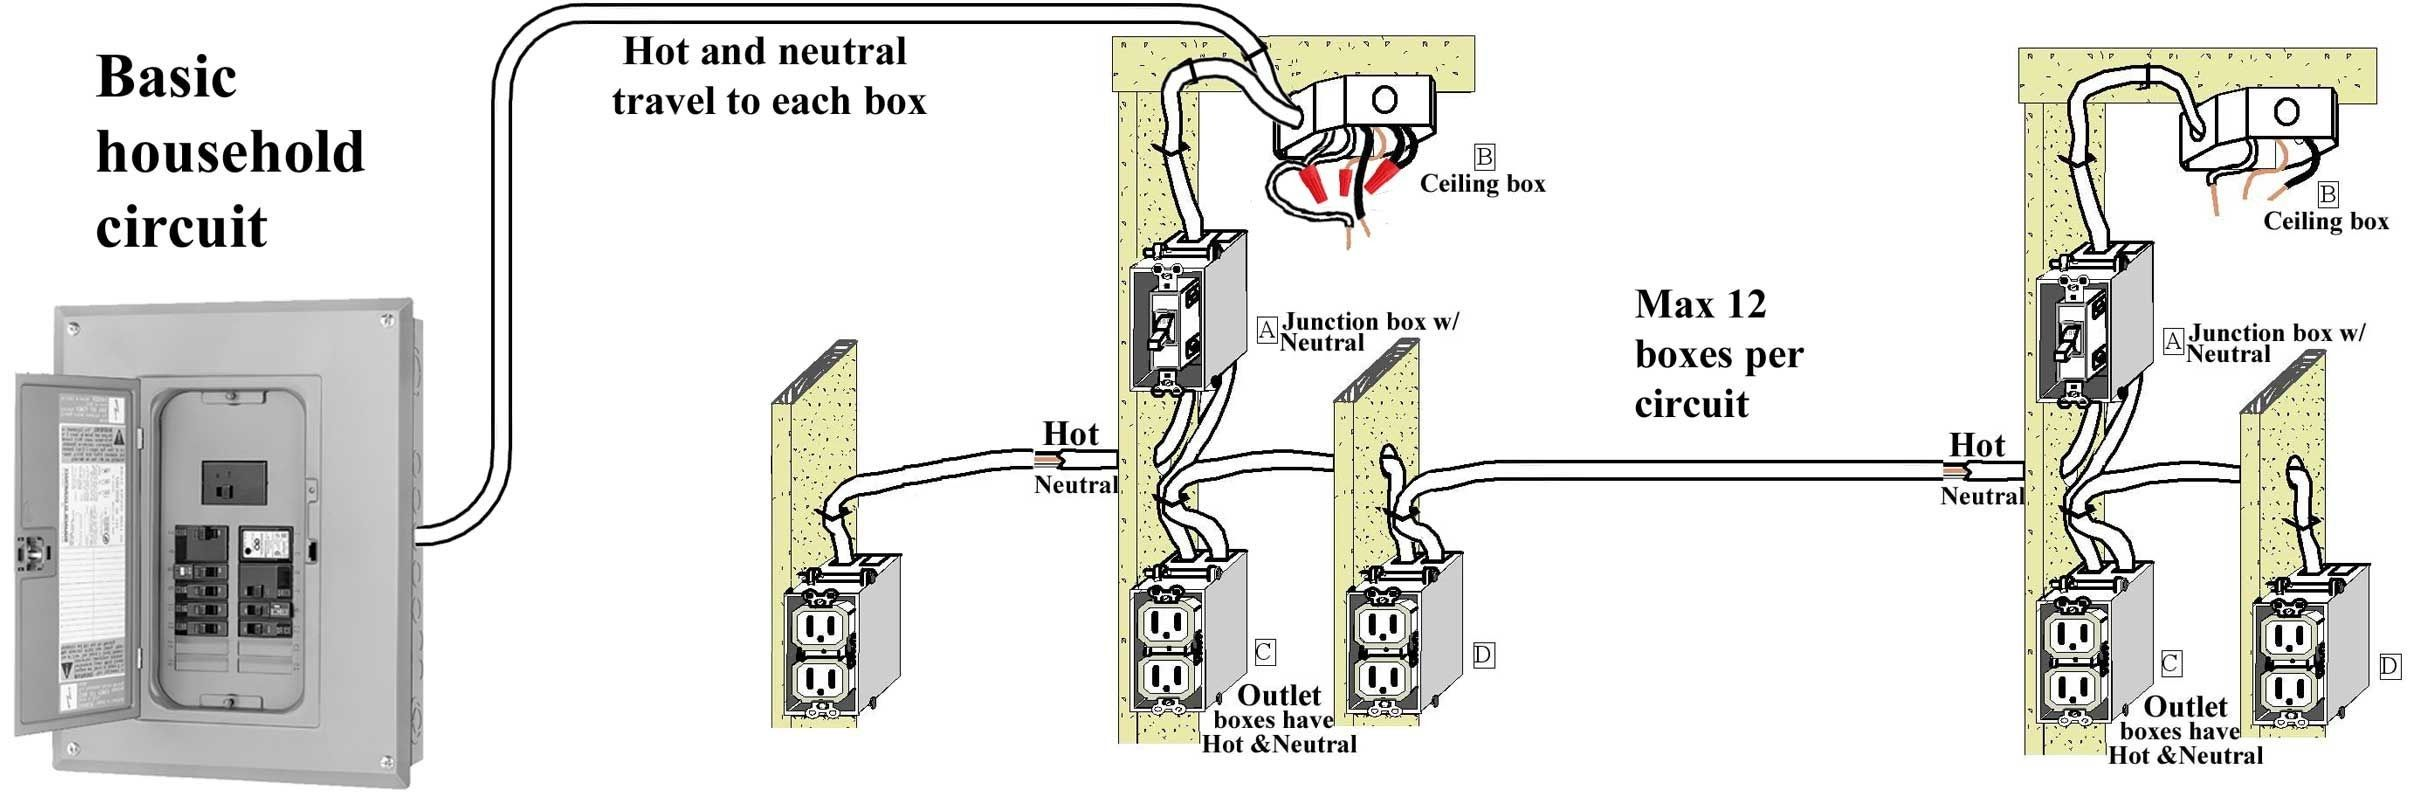 small resolution of new basic electrical wiring diagram diagram wiringdiagram diagramming diagramm visuals